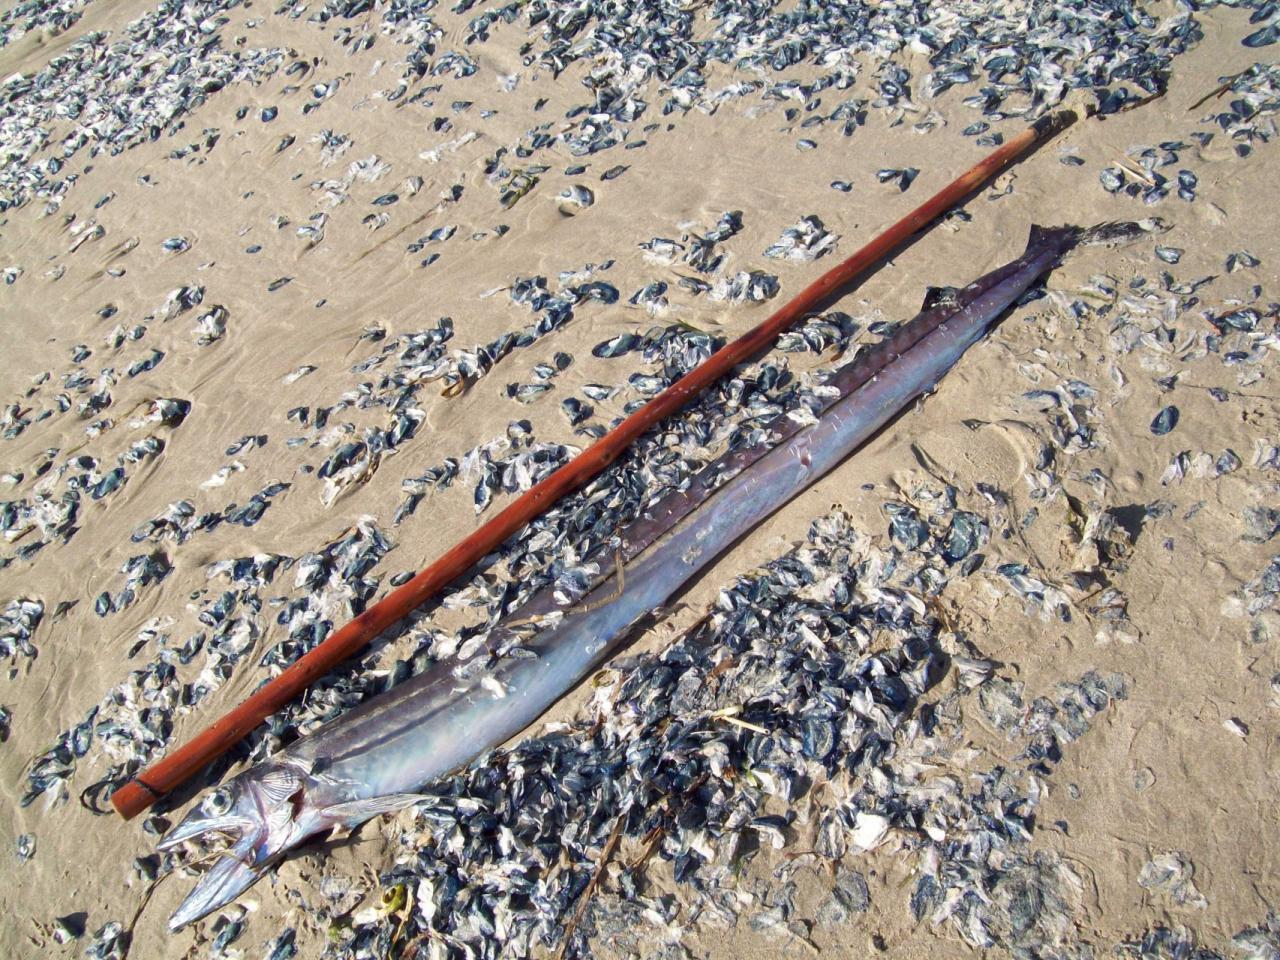 Lancetfish is about 4.5' long, shown here next to 5' walking stick.